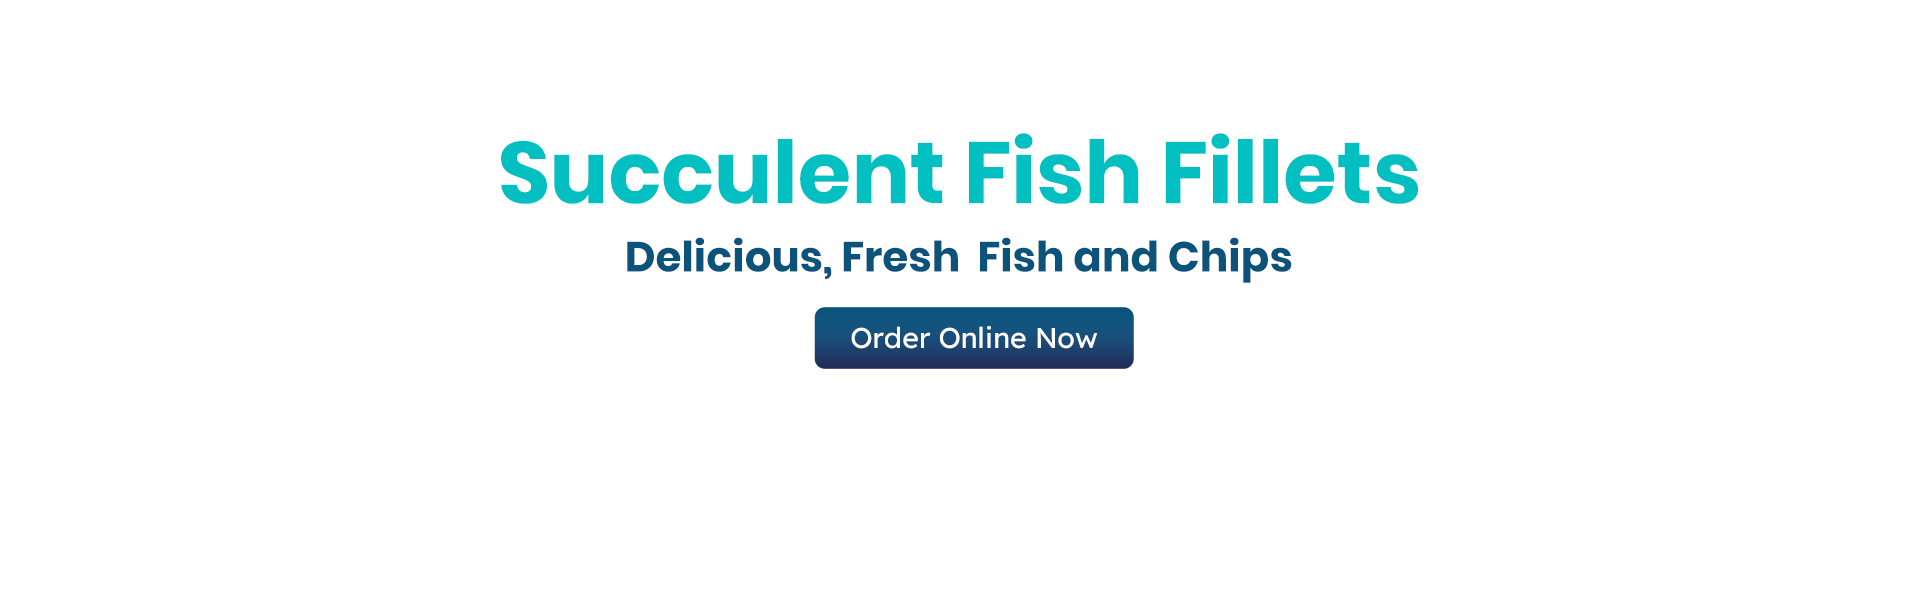 Succulent Fish Fillets from Ocean Fish Bar